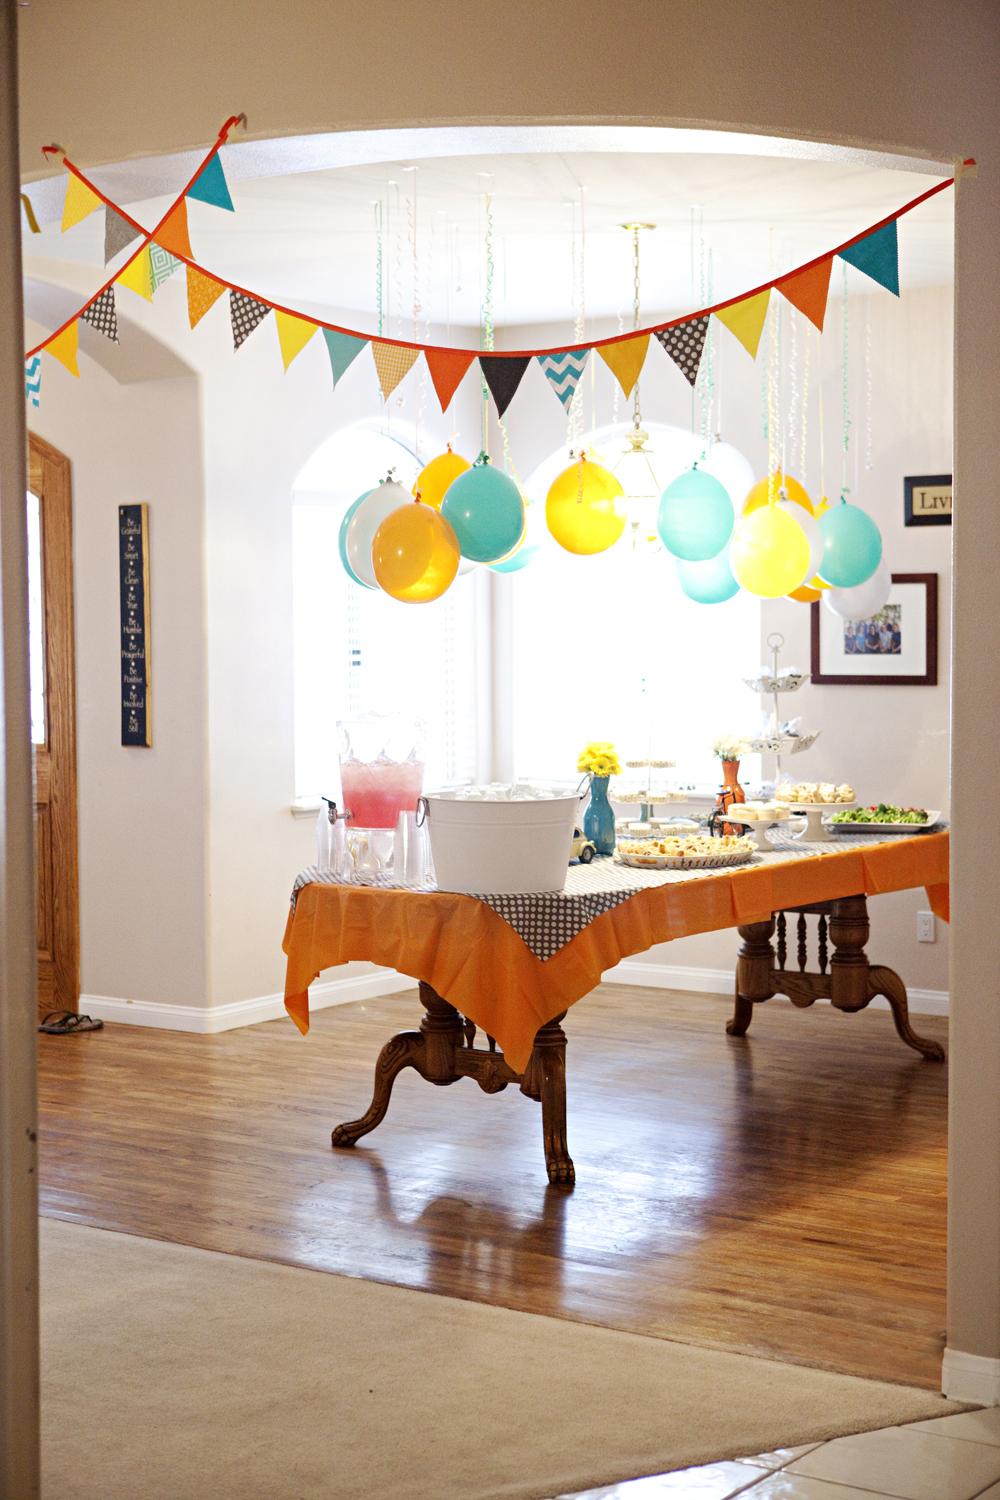 upside-down-balloons-party-1